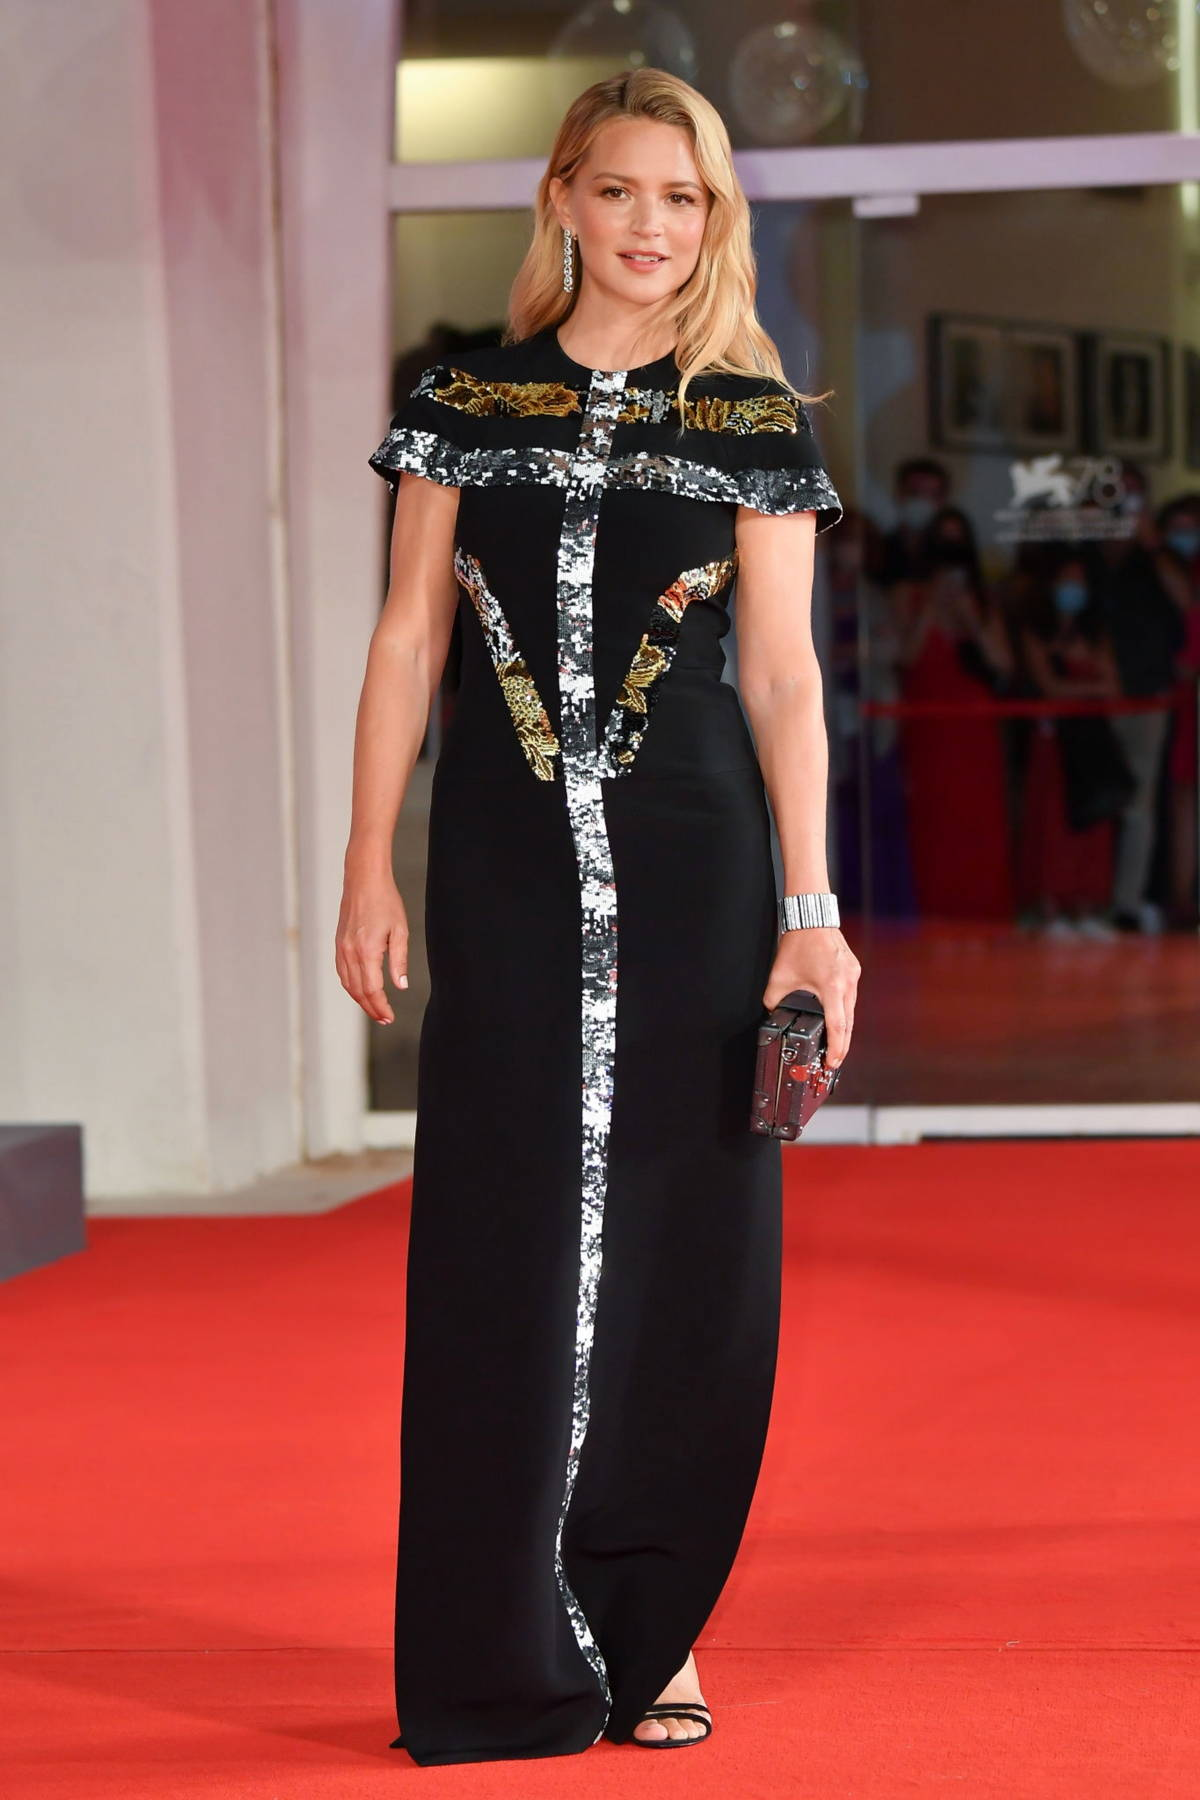 Virginie Efira attends the Premiere of 'Mona Lisa And The Blood Moon' during the 78th Venice International Film Festival in Venice, Italy